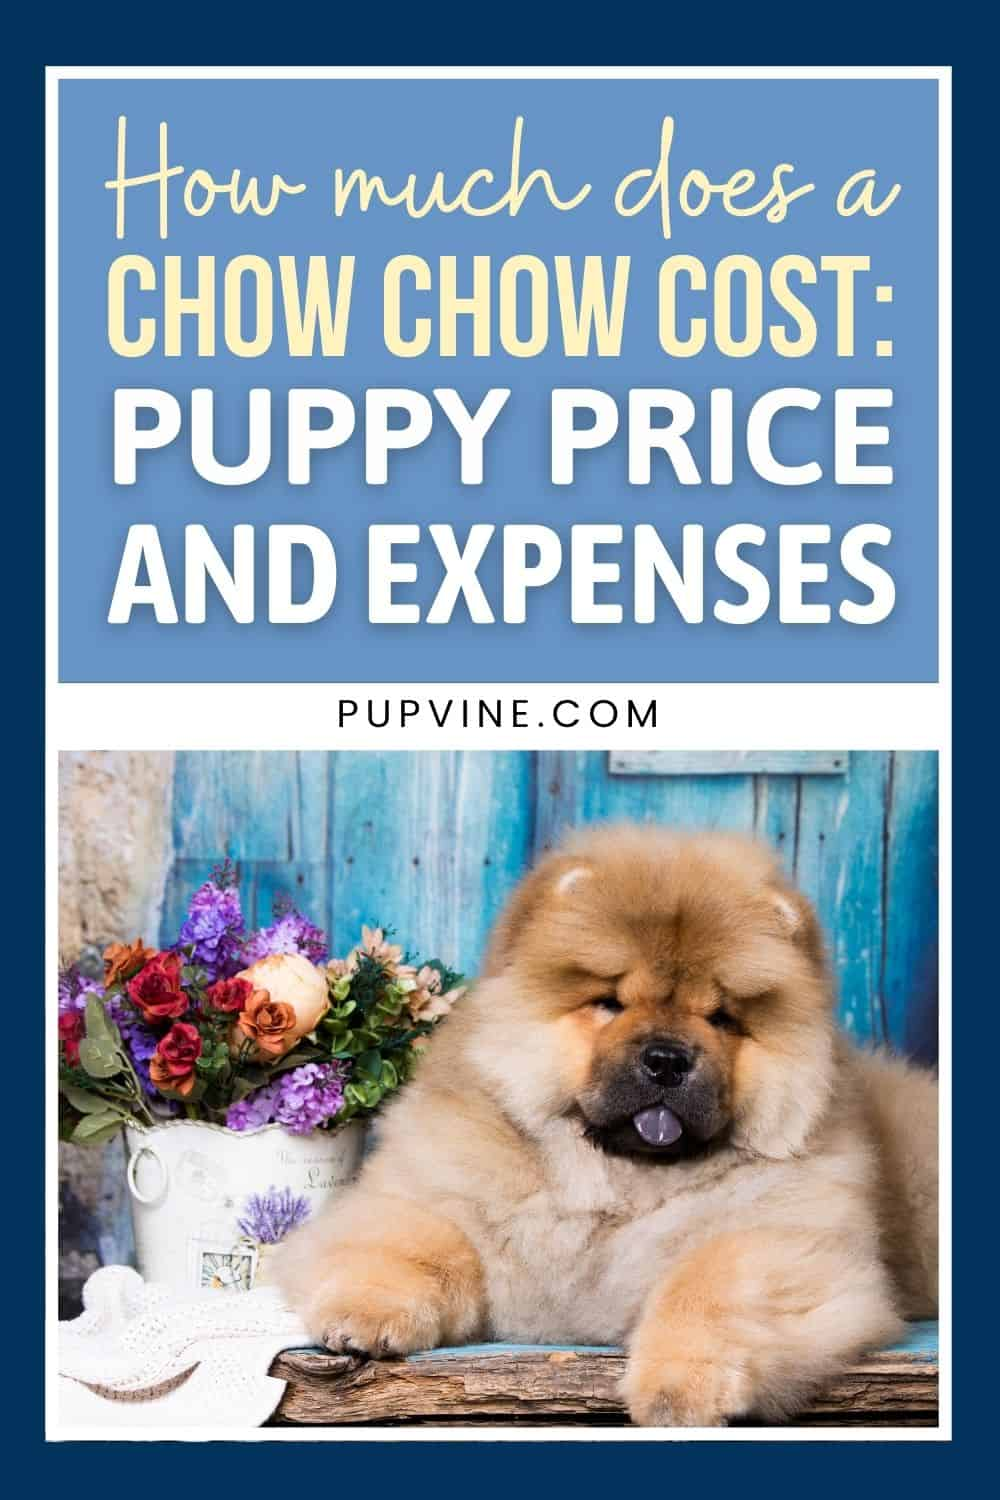 How Much Does A Chow Chow Cost Puppy Price And Expenses